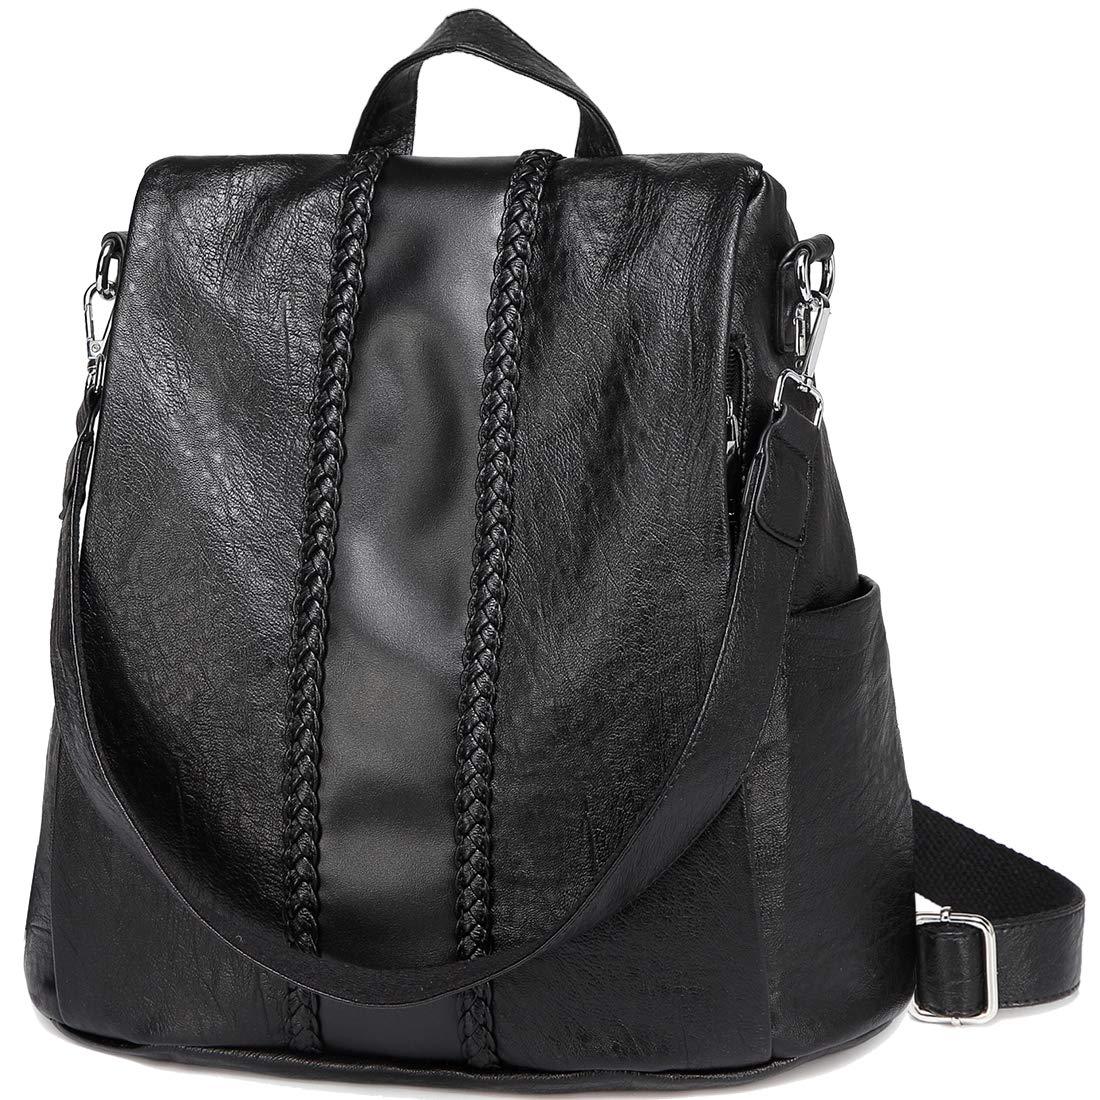 Backpack Purse for Women,VASCHY Fashion Faux Leather Convertible Anti-theft Backpack for Ladies with Vintage Weave Black